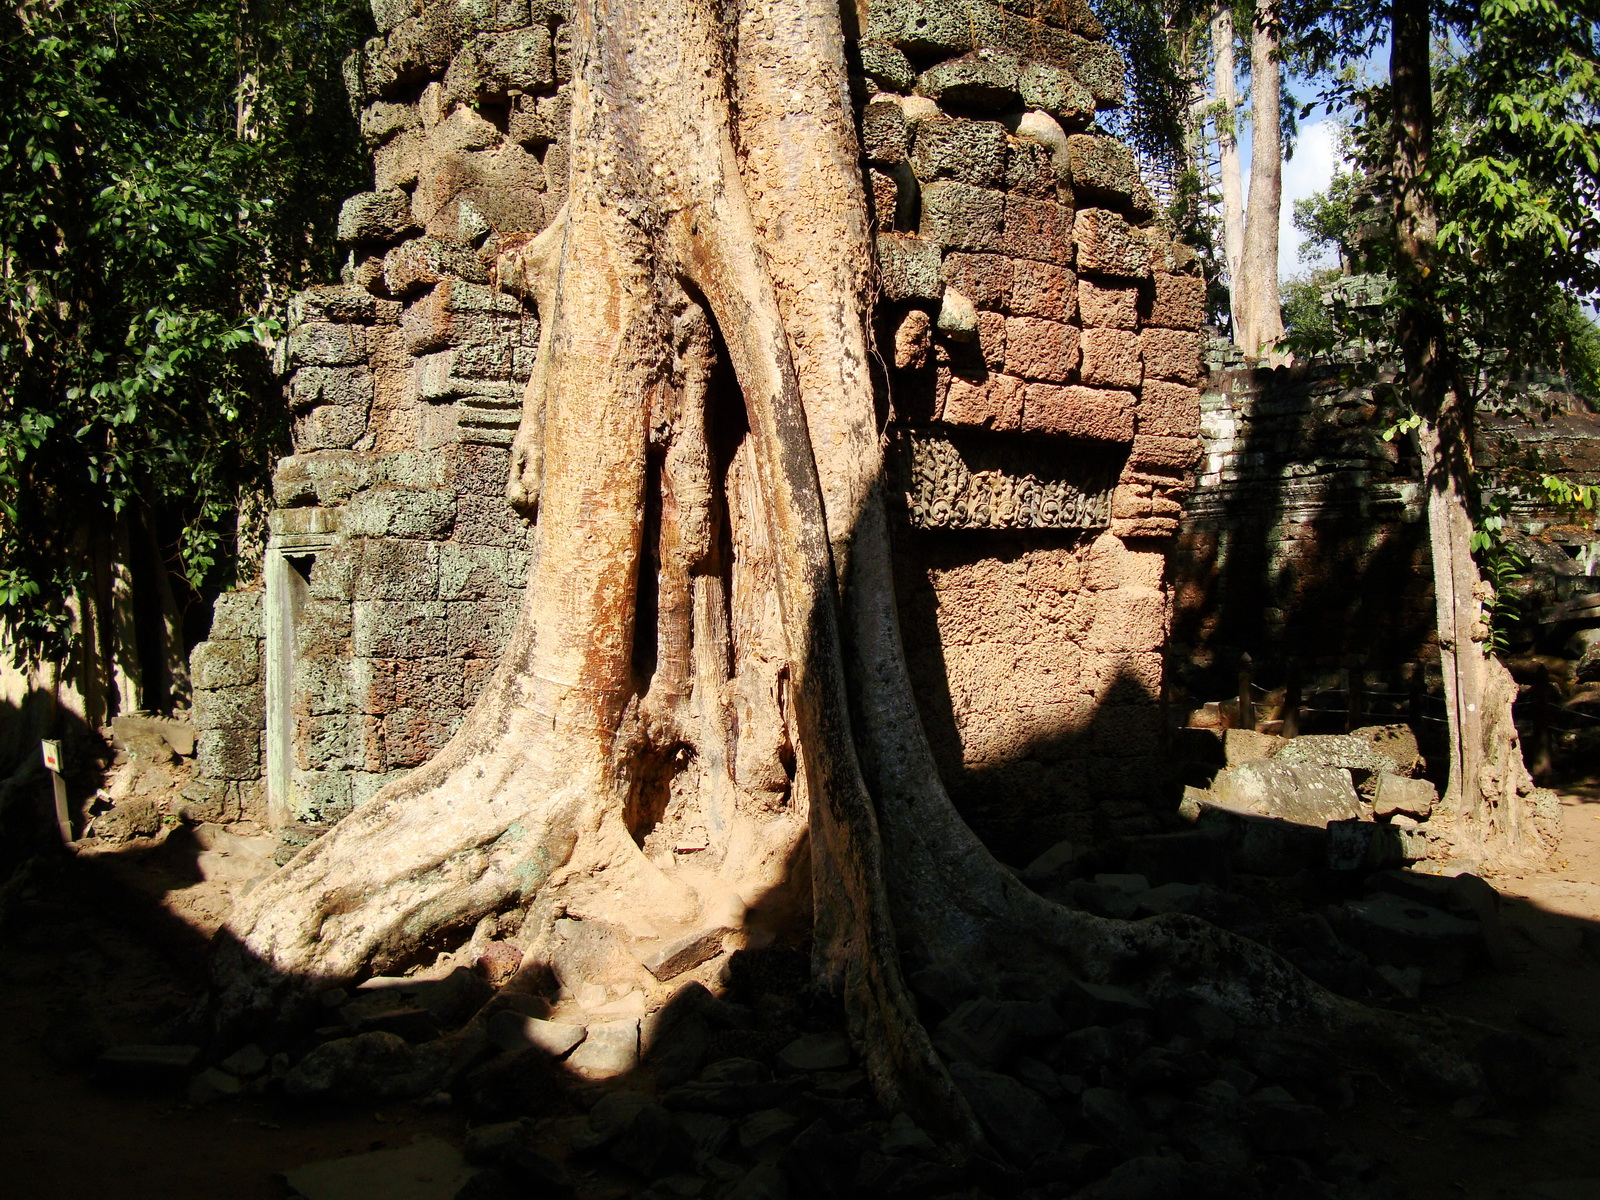 Ta Prohm Temple Tomb Raider giant trees dwaf the laterite walls 14